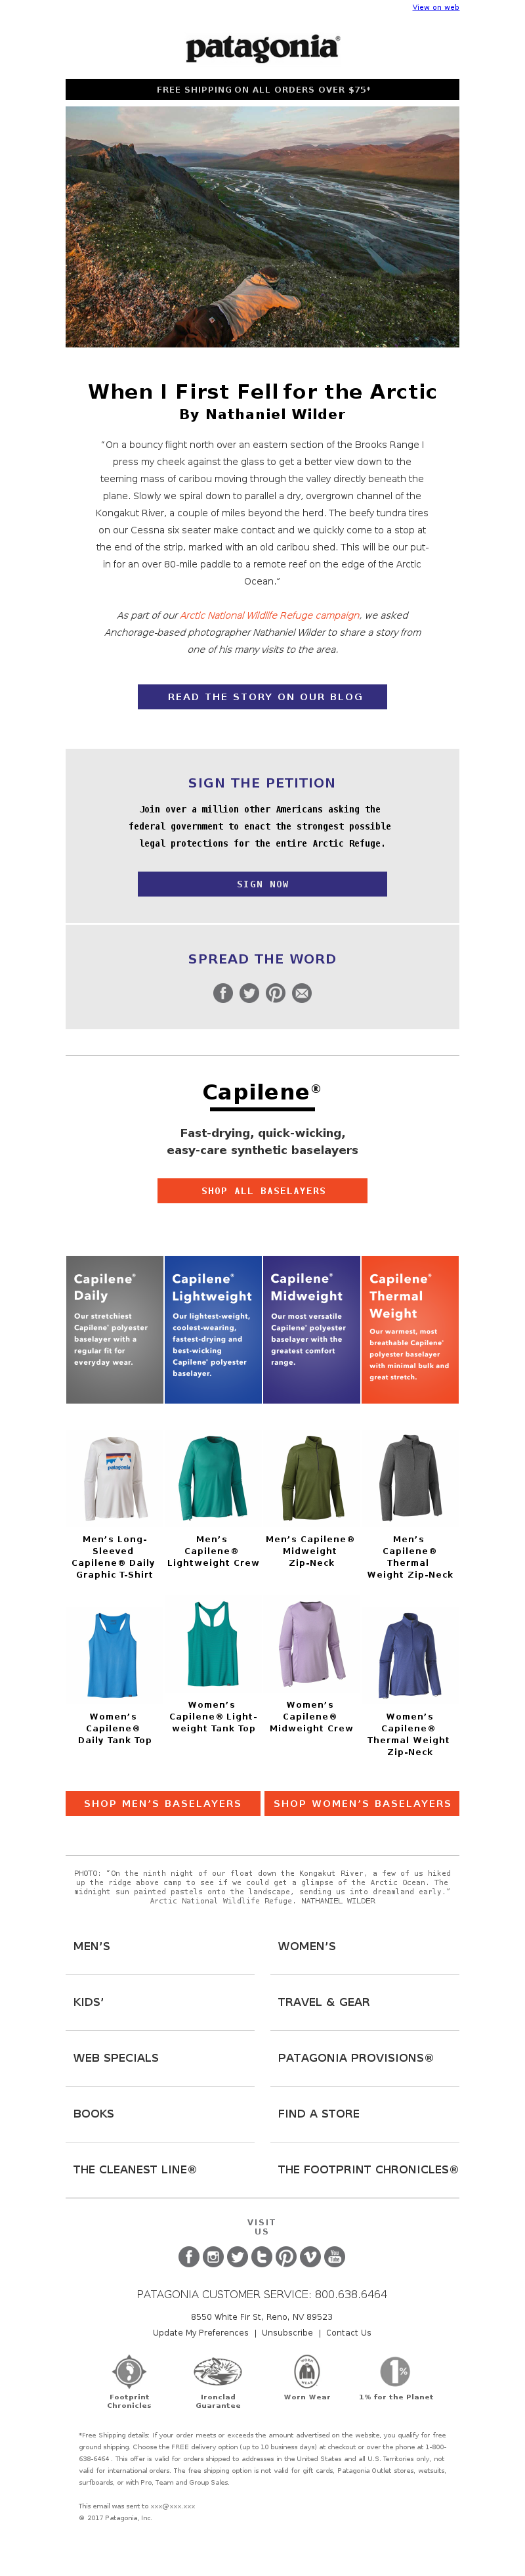 Plus, fast-drying, quick-wicking, easy-care Capilene baselayers. View on we